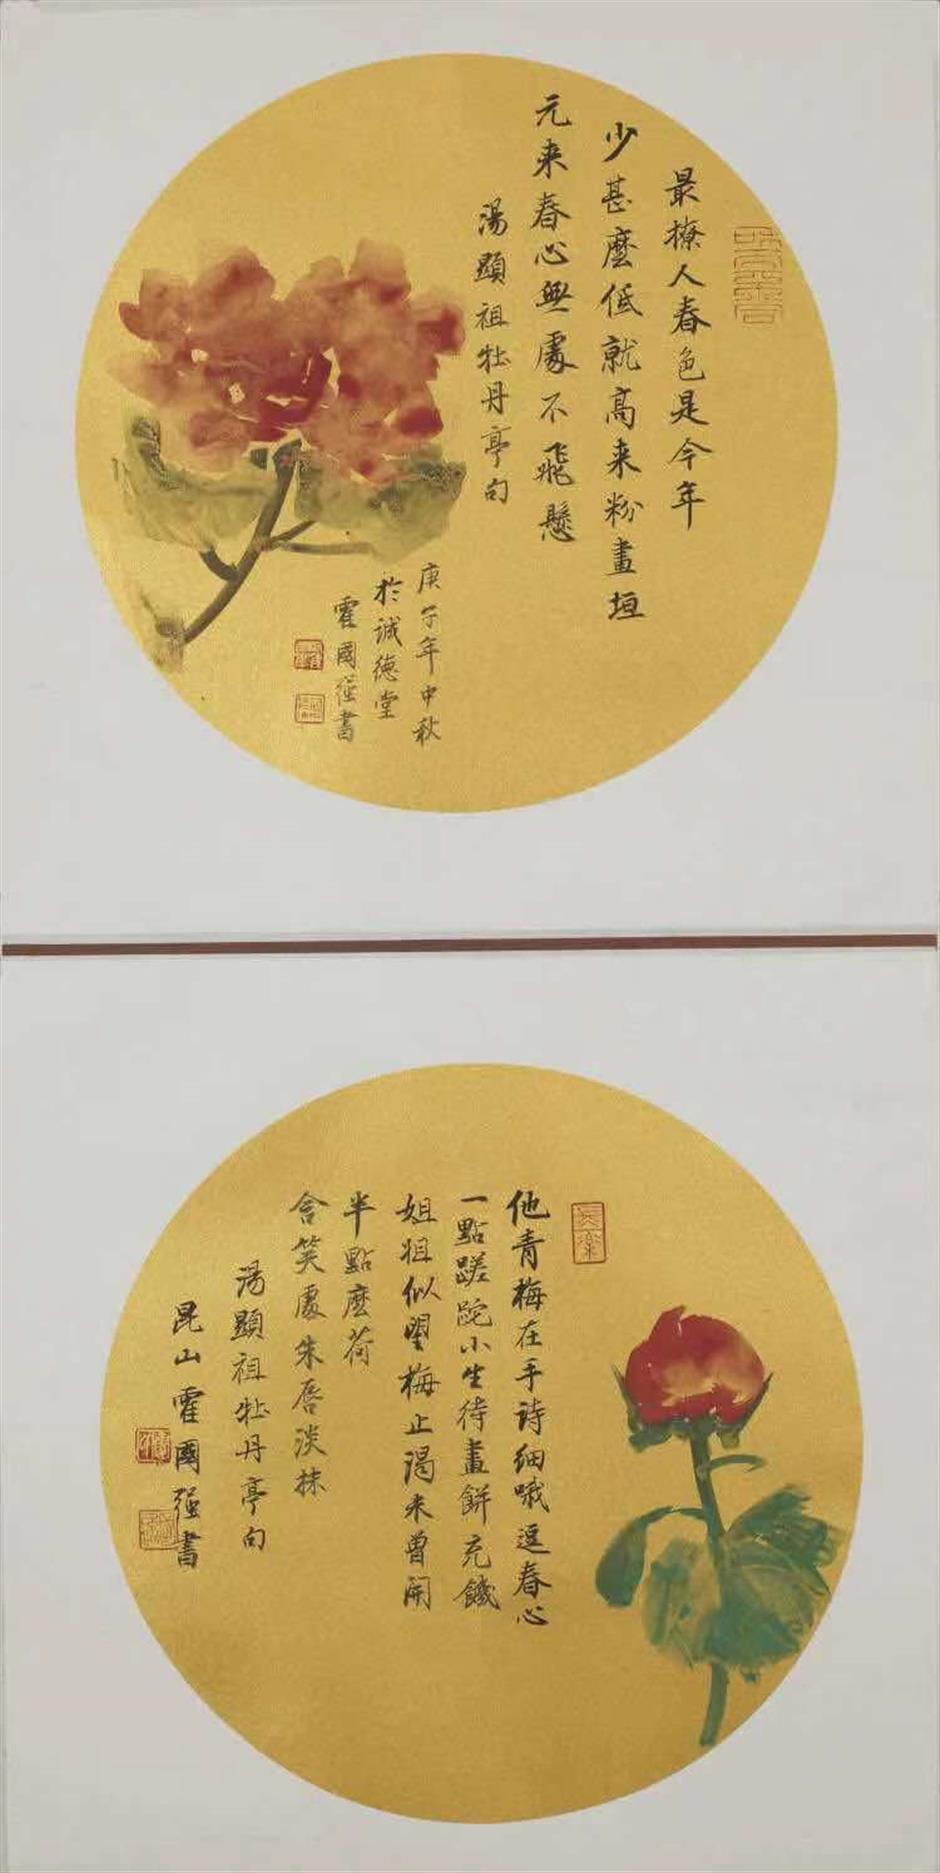 How calligraphy collides with Kunqu Opera